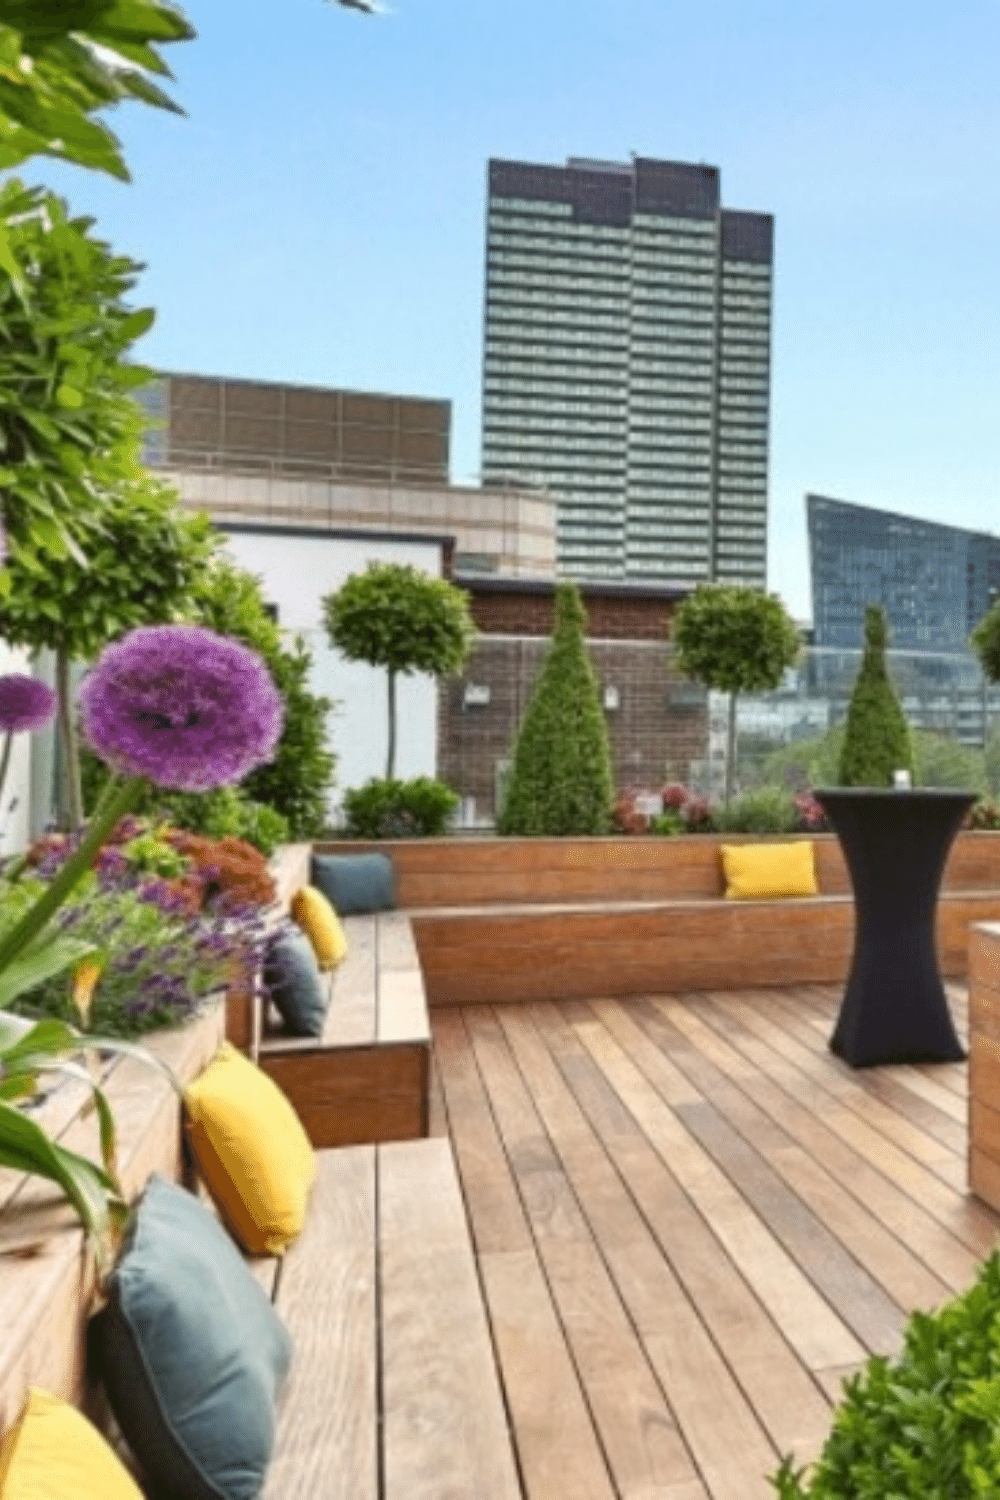 Rooftop Venues London for Bar Mitzvah Parties 30 Euston Square Terrace